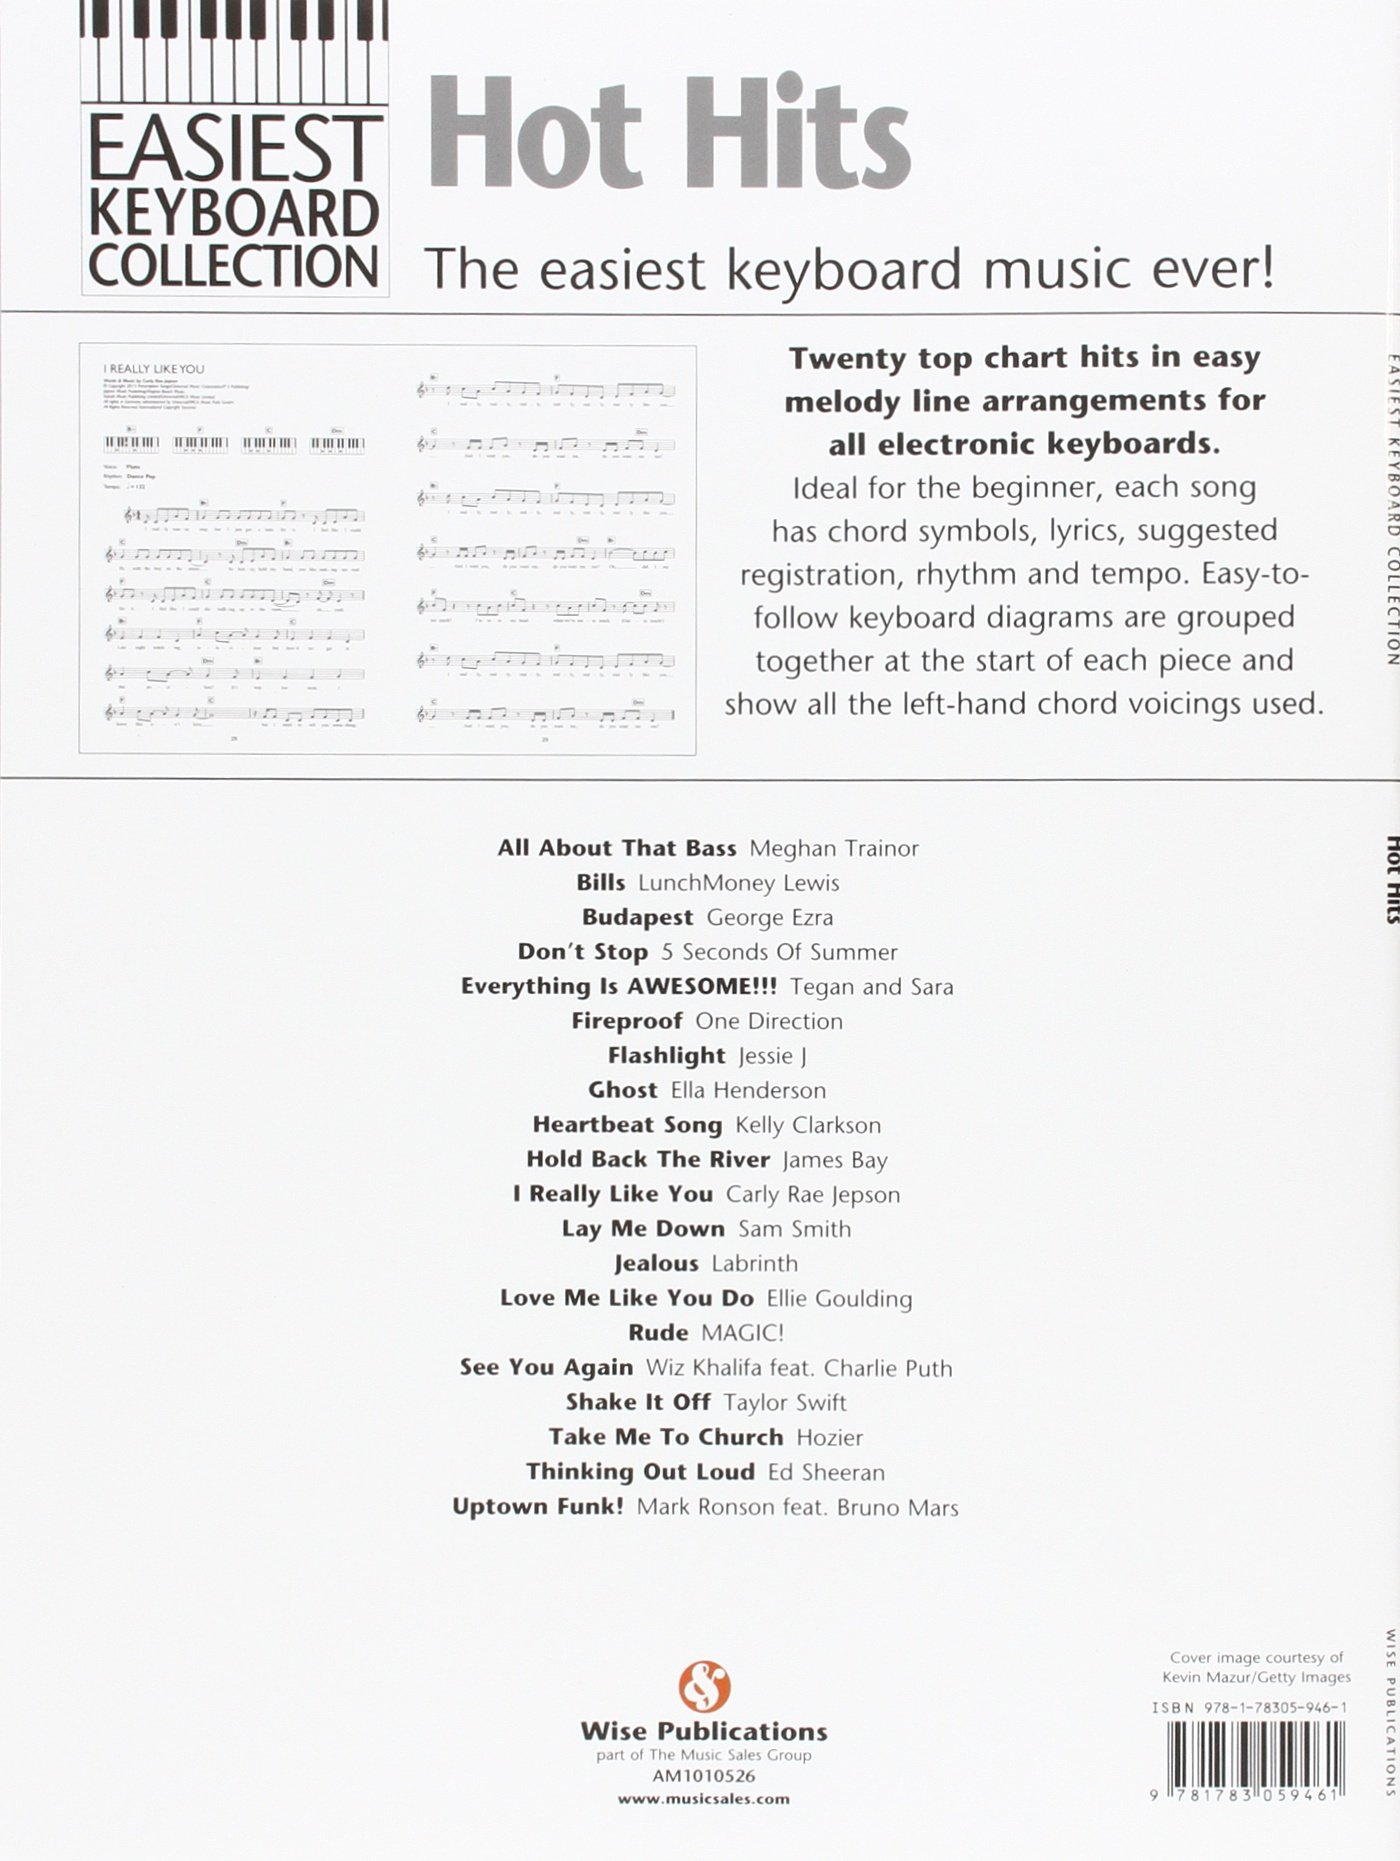 Easiest keyboard collection hot hits amazon various easiest keyboard collection hot hits amazon various 9781783059461 books hexwebz Choice Image